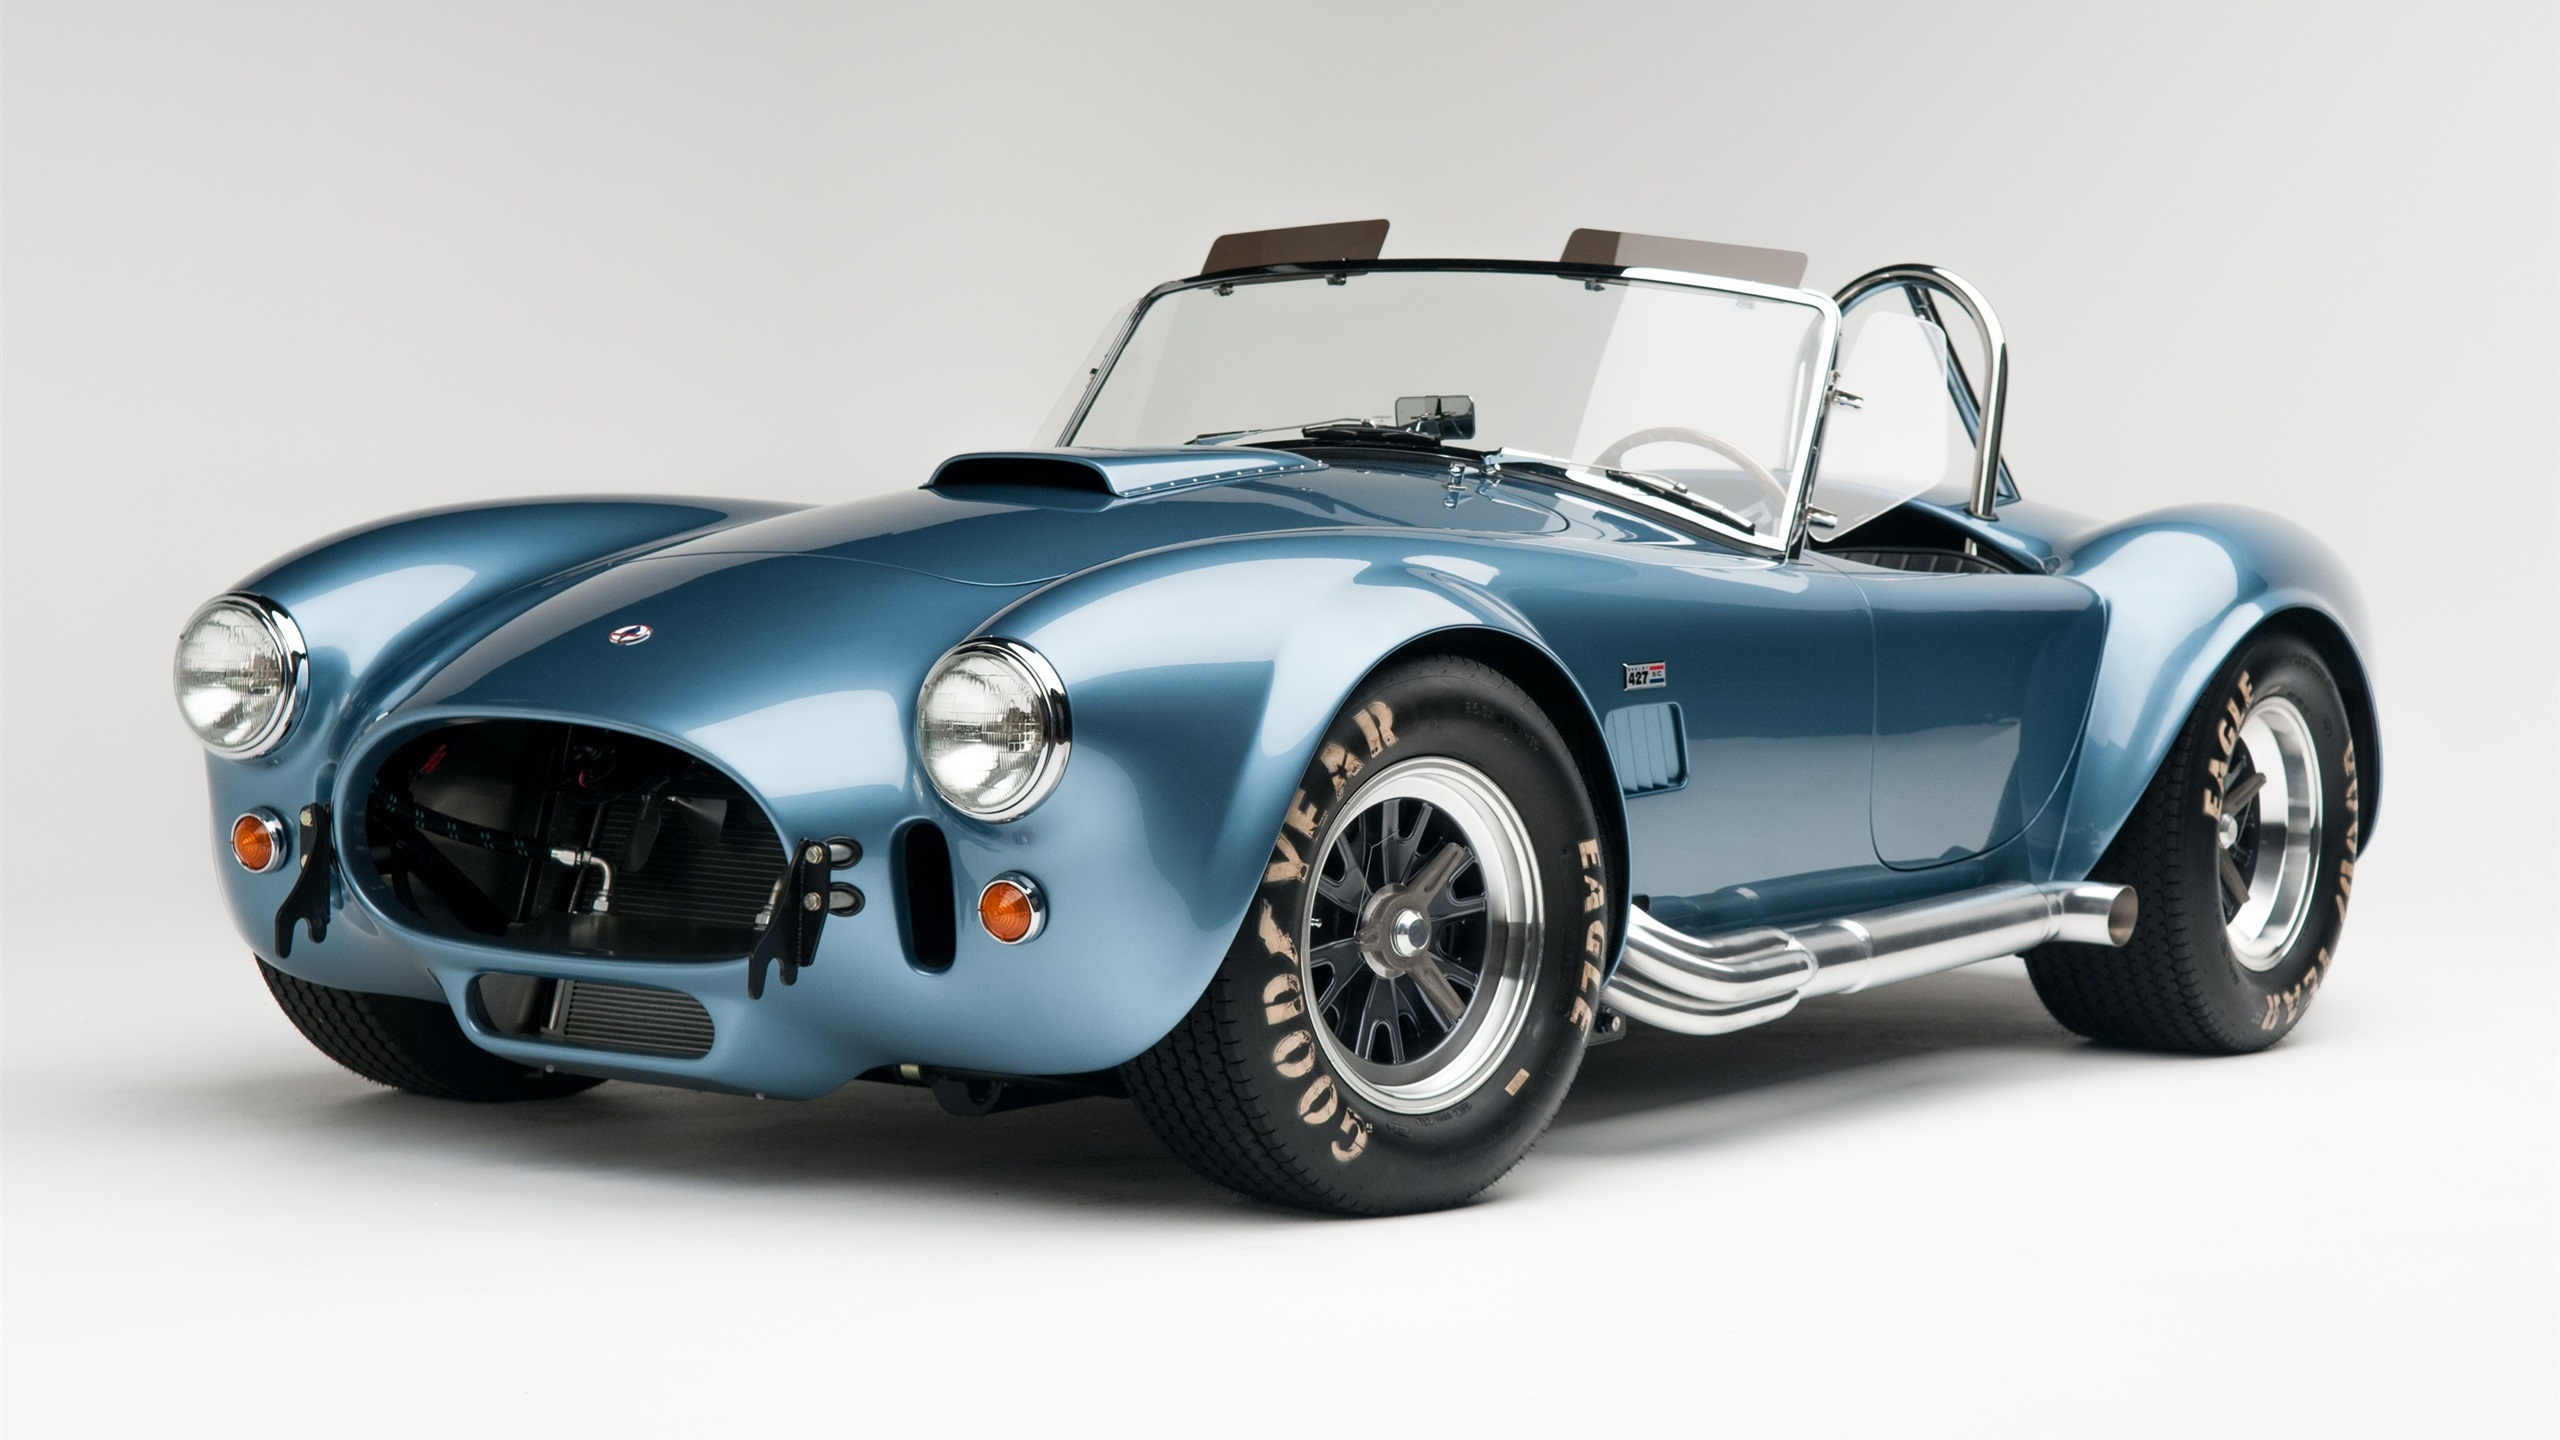 wallpaper ford shelby cobra 427 sc csx 6000 supercar 2560x1600 hd picture image. Black Bedroom Furniture Sets. Home Design Ideas